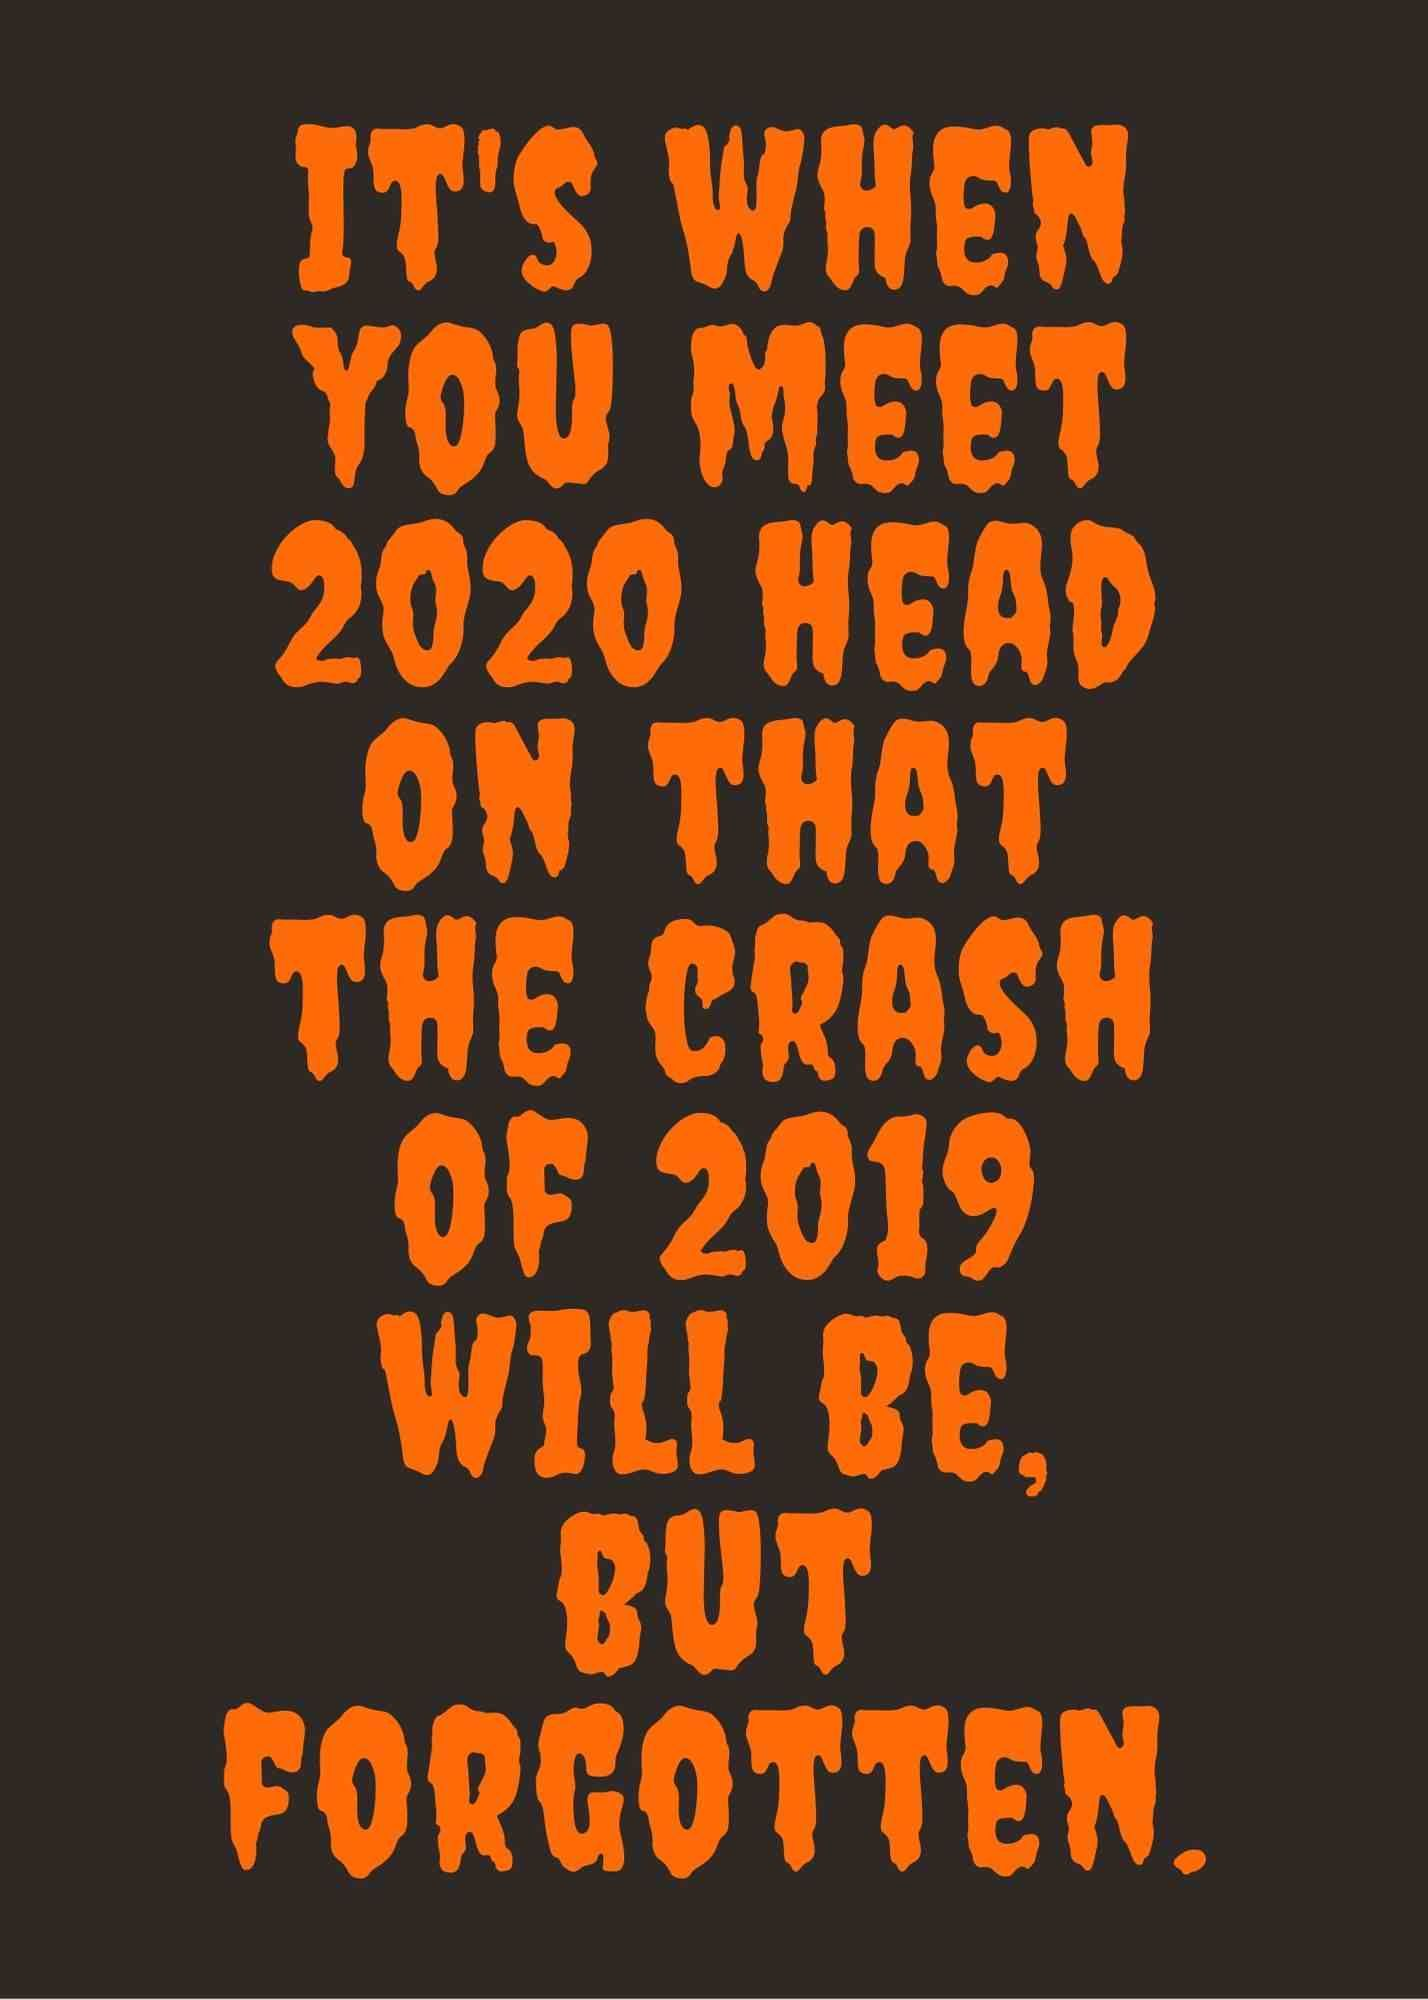 It's when you meet 2020 head on that the crash of 2019